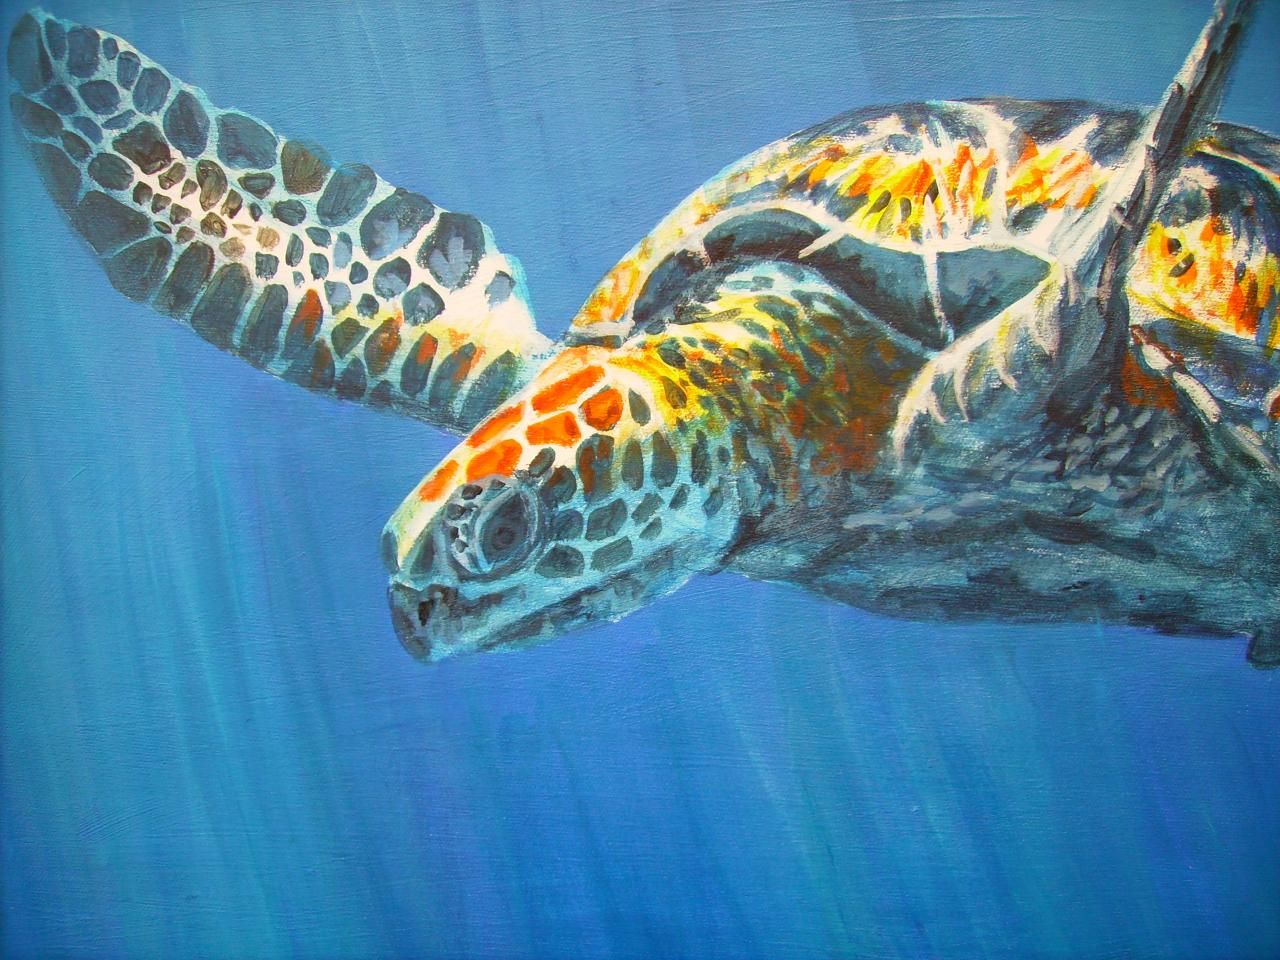 sea turtleart sea turtle painting underwater art